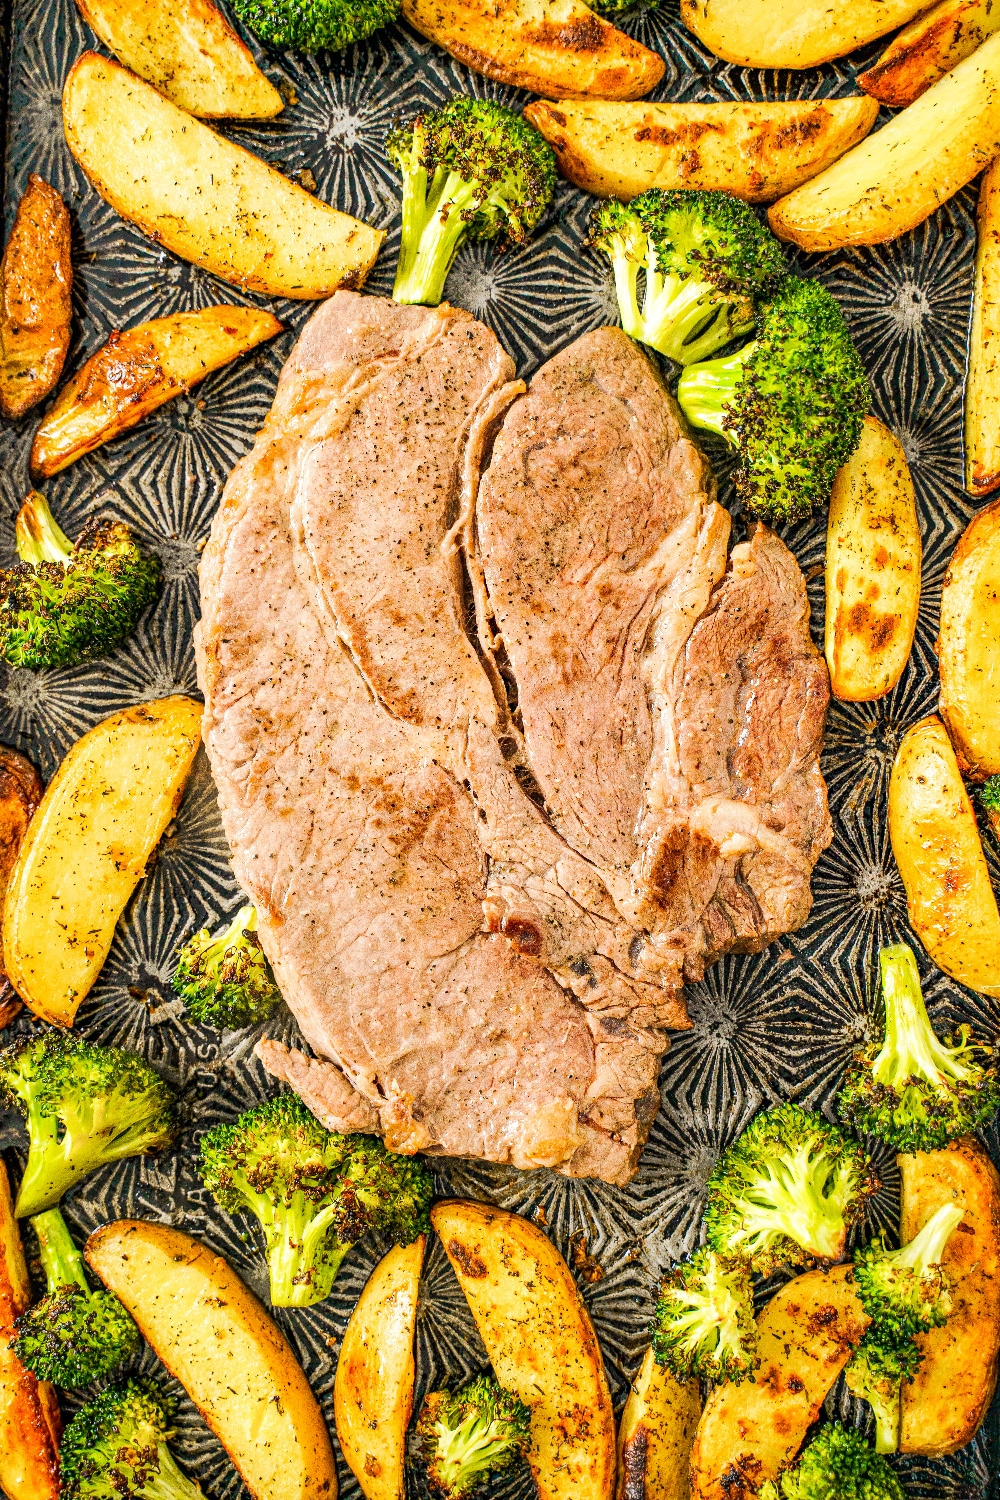 Prepared steak sounded by a bed of potatoes and broccoli on a sheet pan.